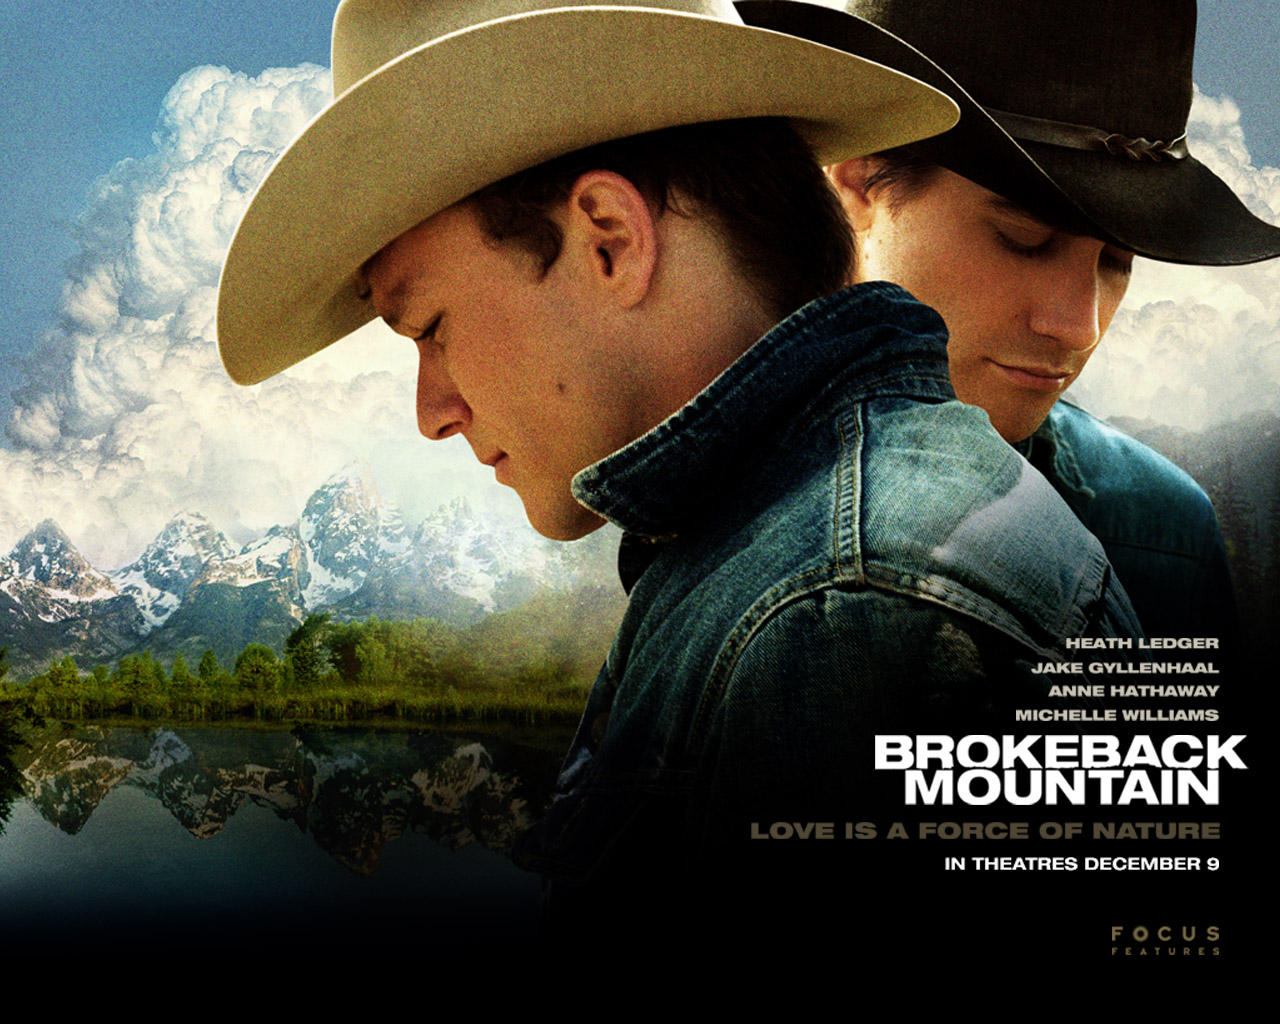 http://3.bp.blogspot.com/_-3h34ZICDRo/TLIzGyYsVEI/AAAAAAAAA8k/23QbpWcIkIc/s1600/heath_ledger_in_brokeback_mountain_wallpaper_1_1280.jpg